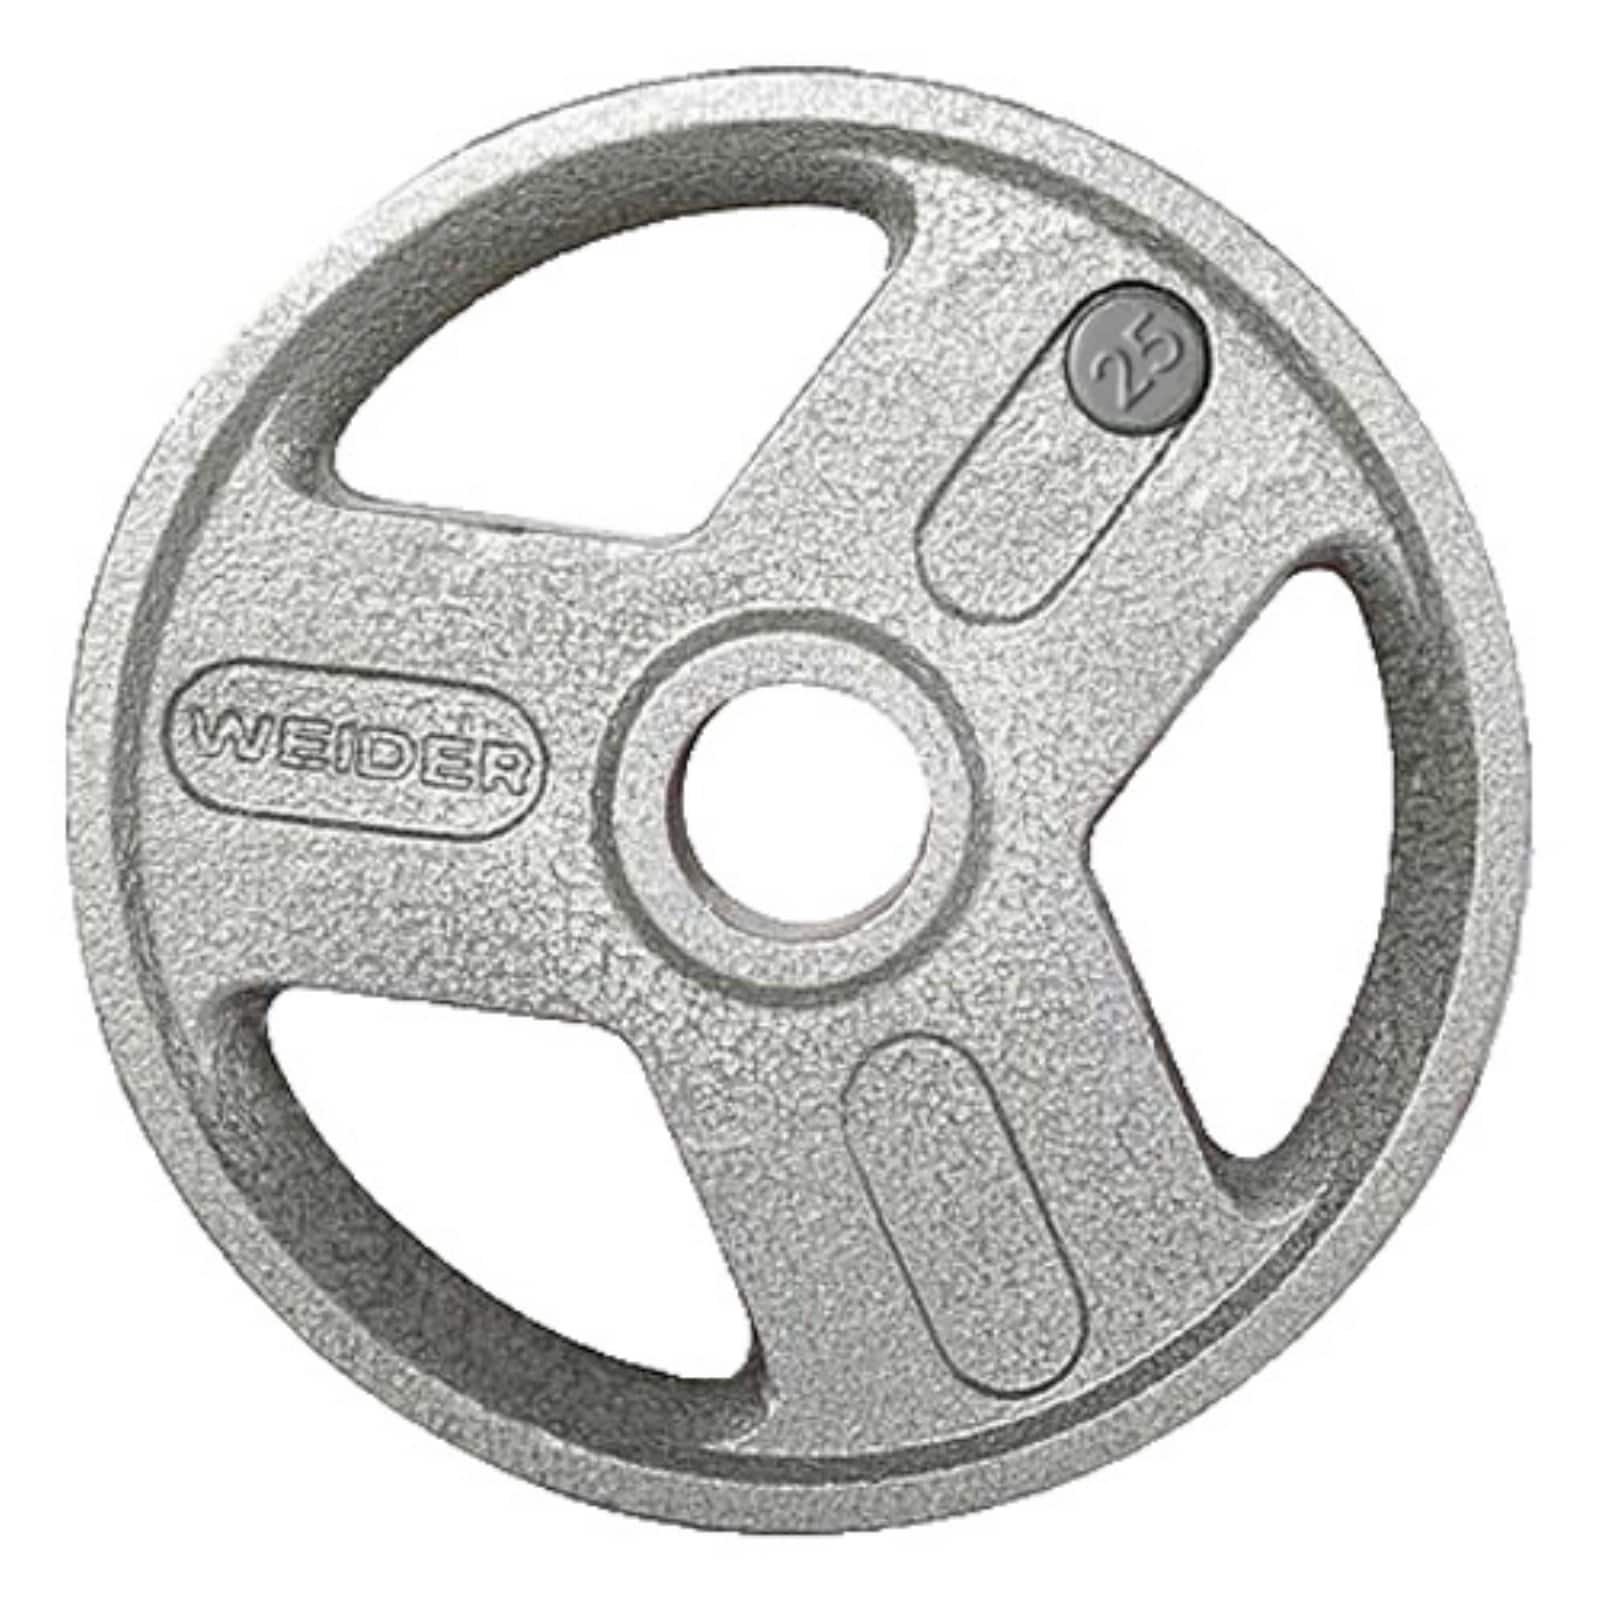 Weider-Olympic-Hammertone-Weight-Plate-with-3-Spoke-Design various 45 lbs $45